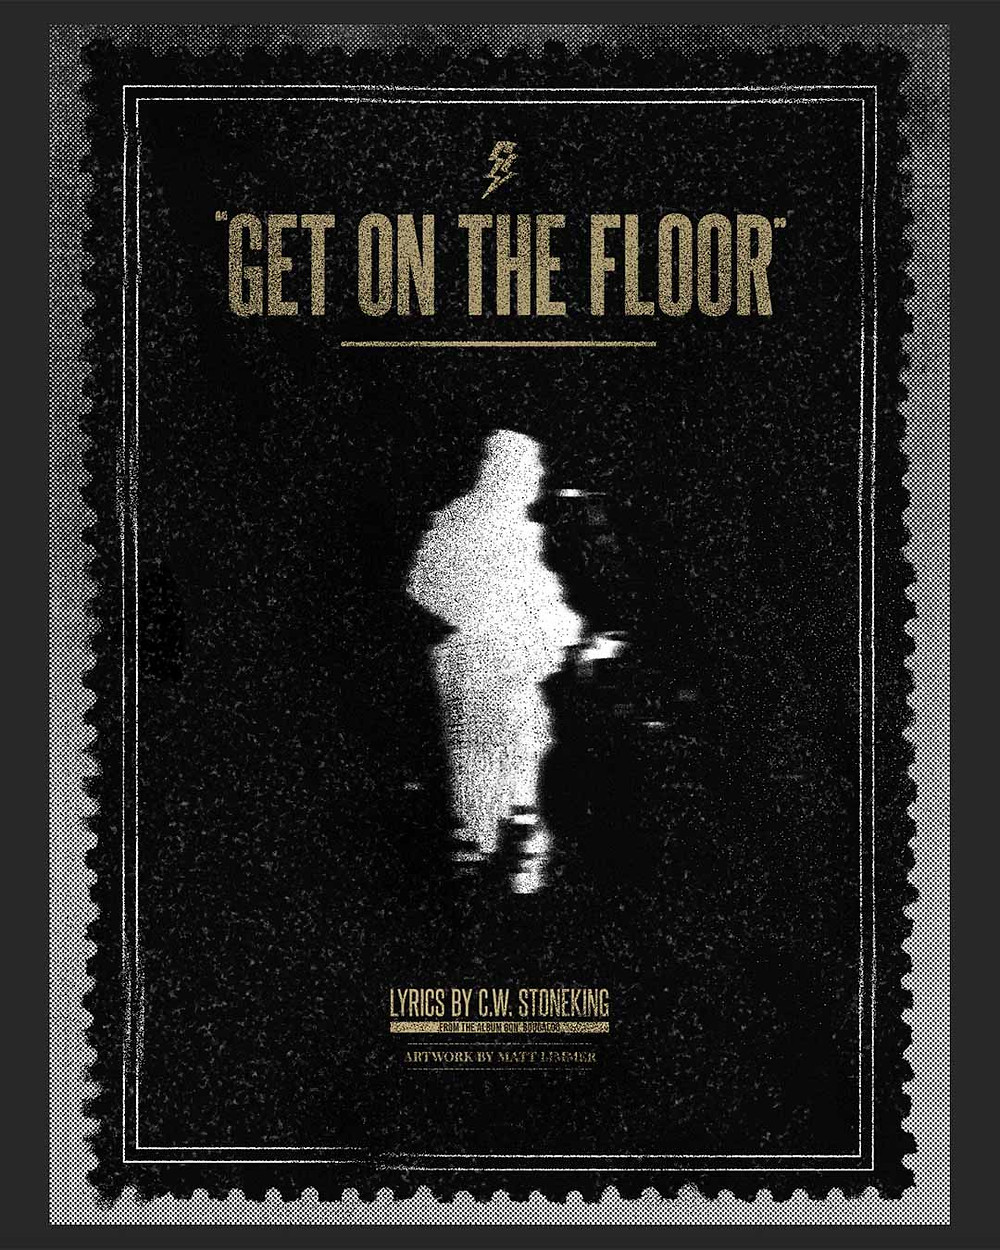 GET ON THE FLOOR in large text above a white figure in the centre.